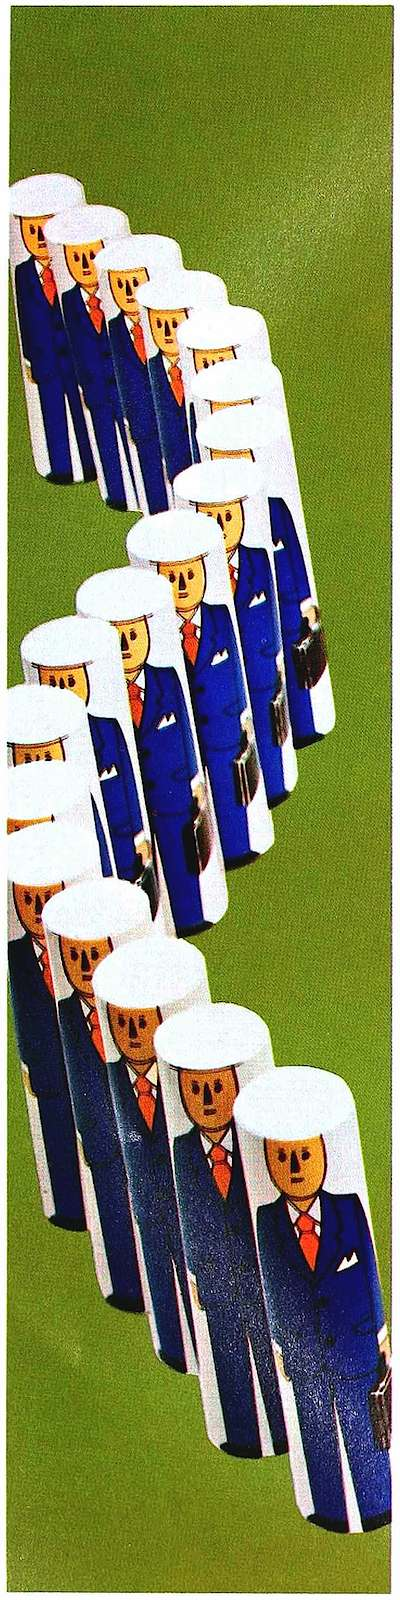 1972 conformity illustration